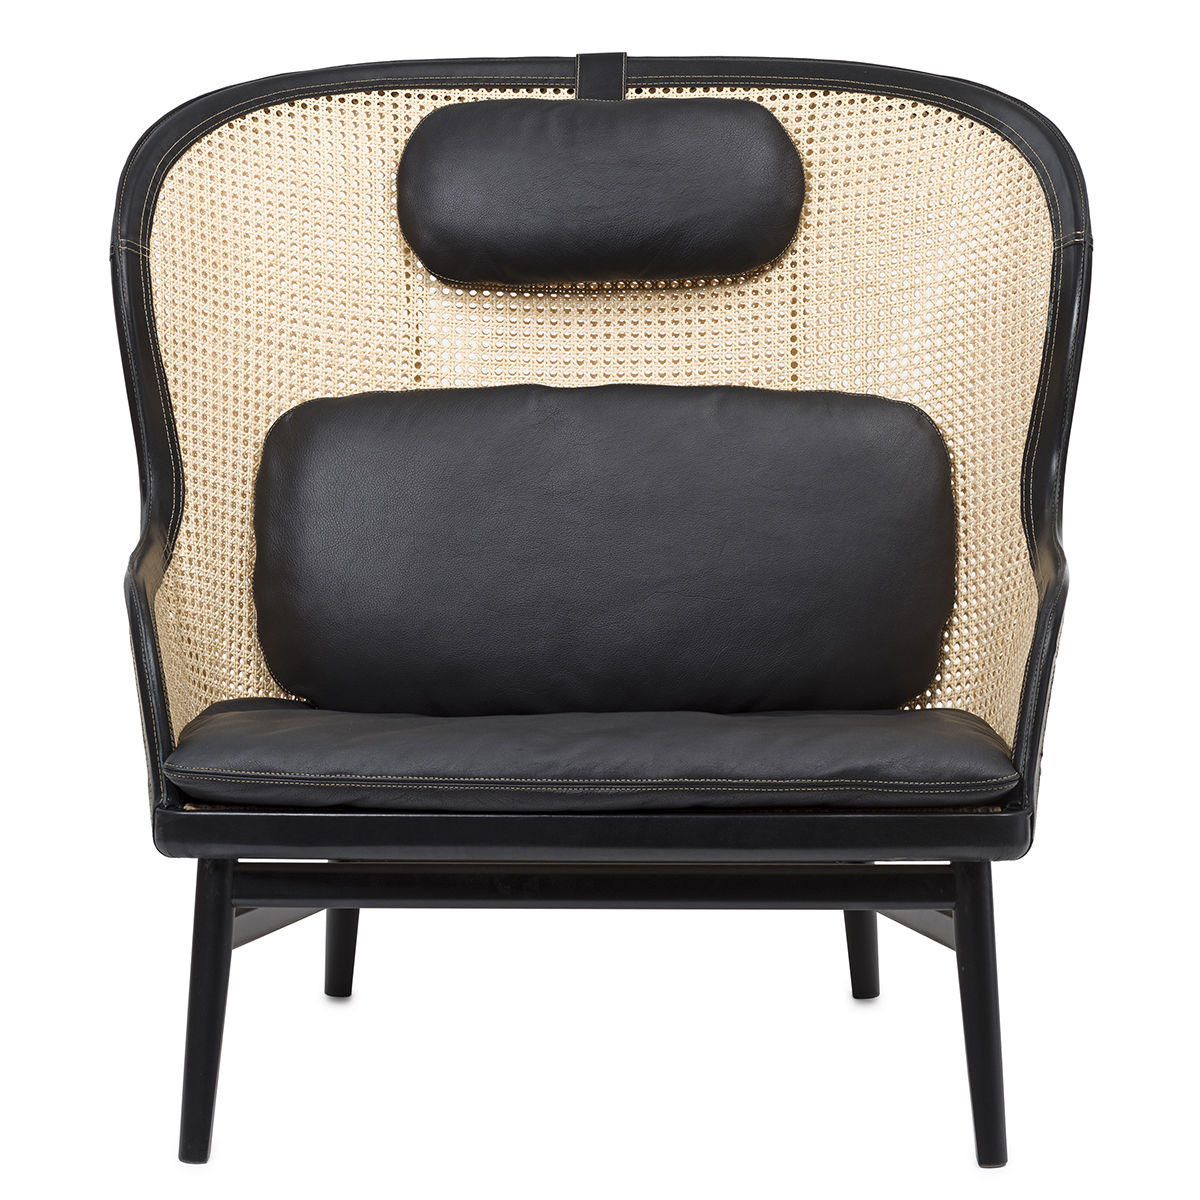 The 'Dandy' armchair by Pierre Sindre for Gärsnäs.